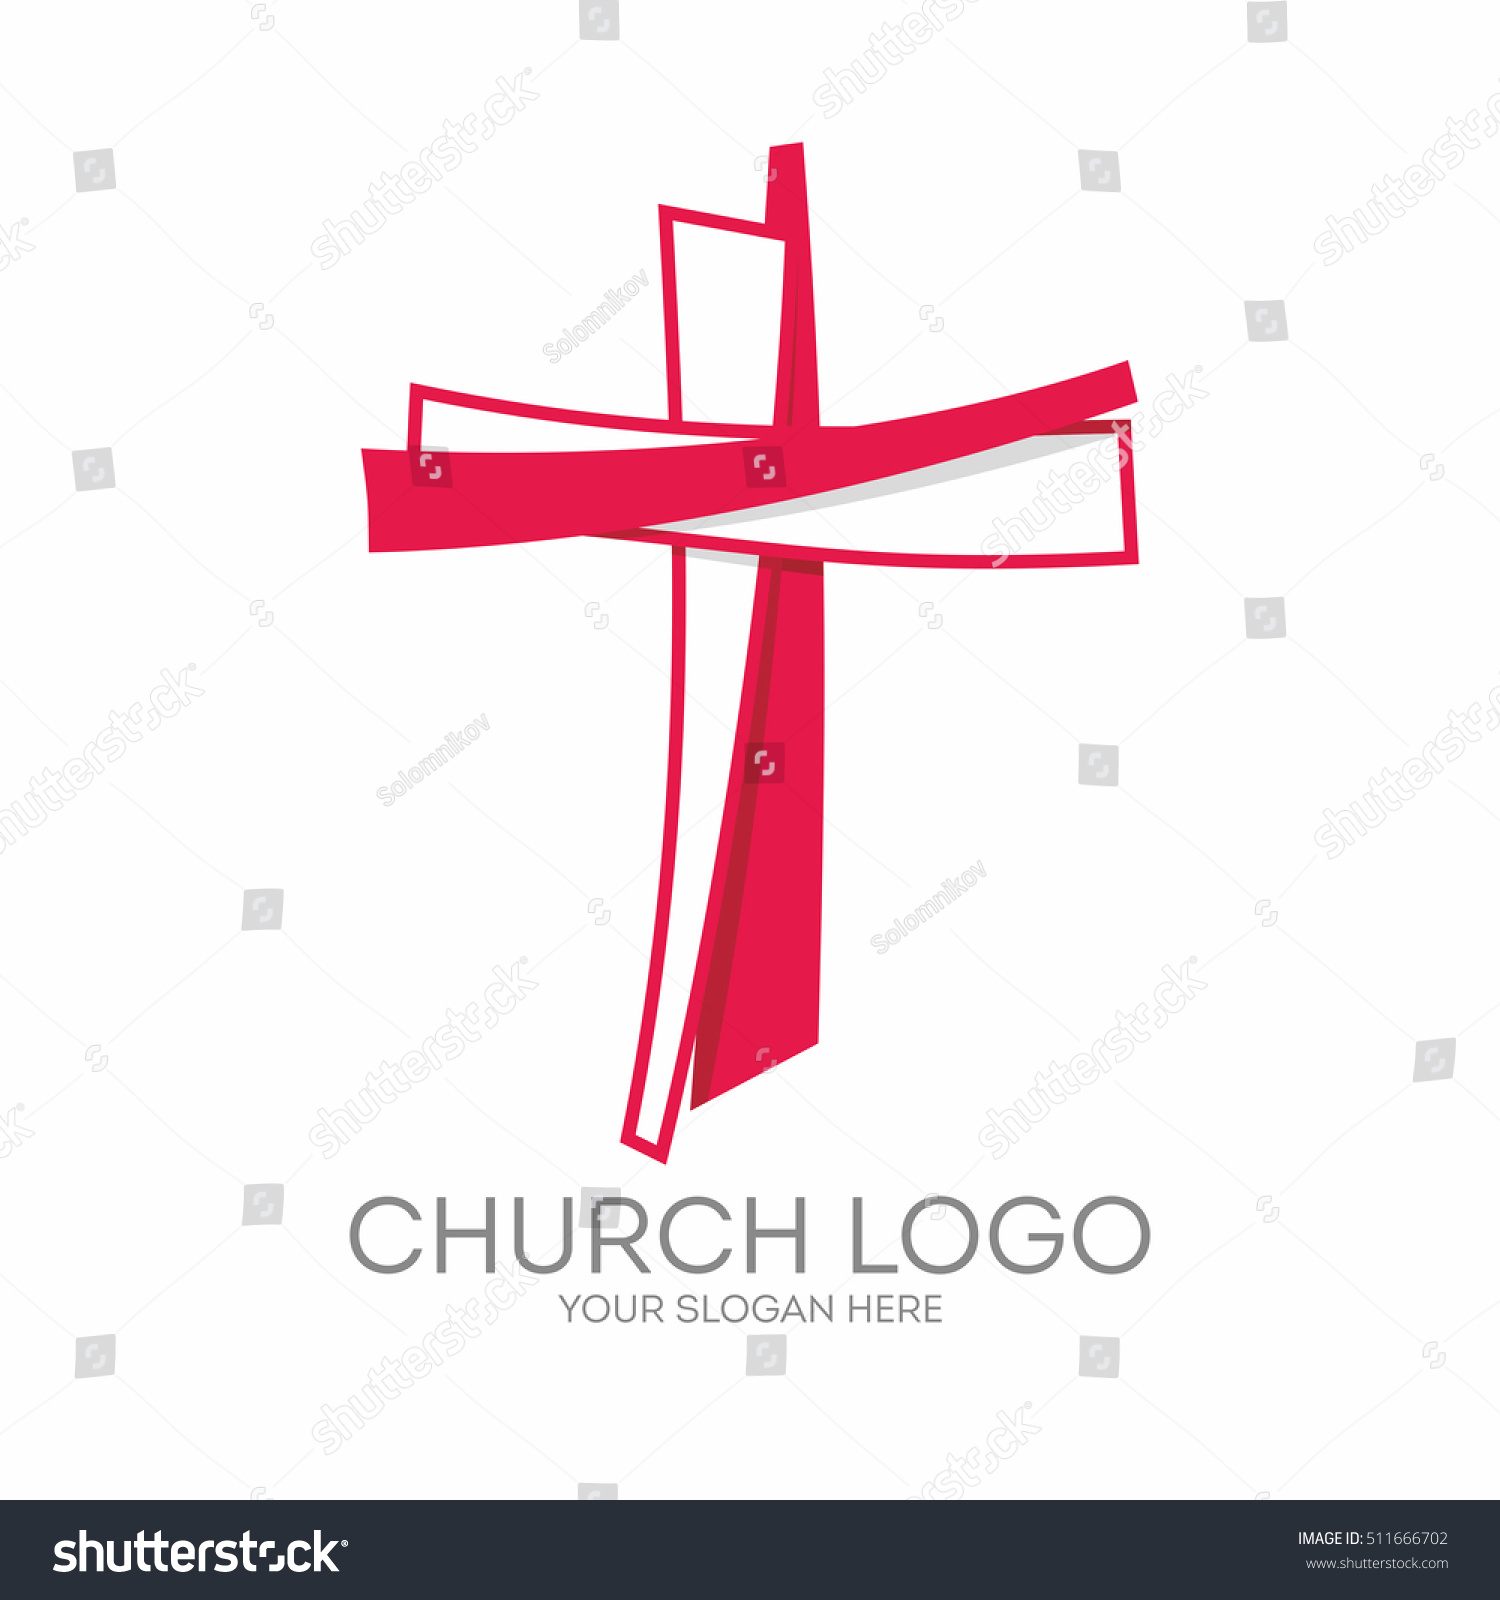 Church logo christian symbols cross jesus stock vector 511666702 christian symbols the cross of jesus christ biocorpaavc Image collections